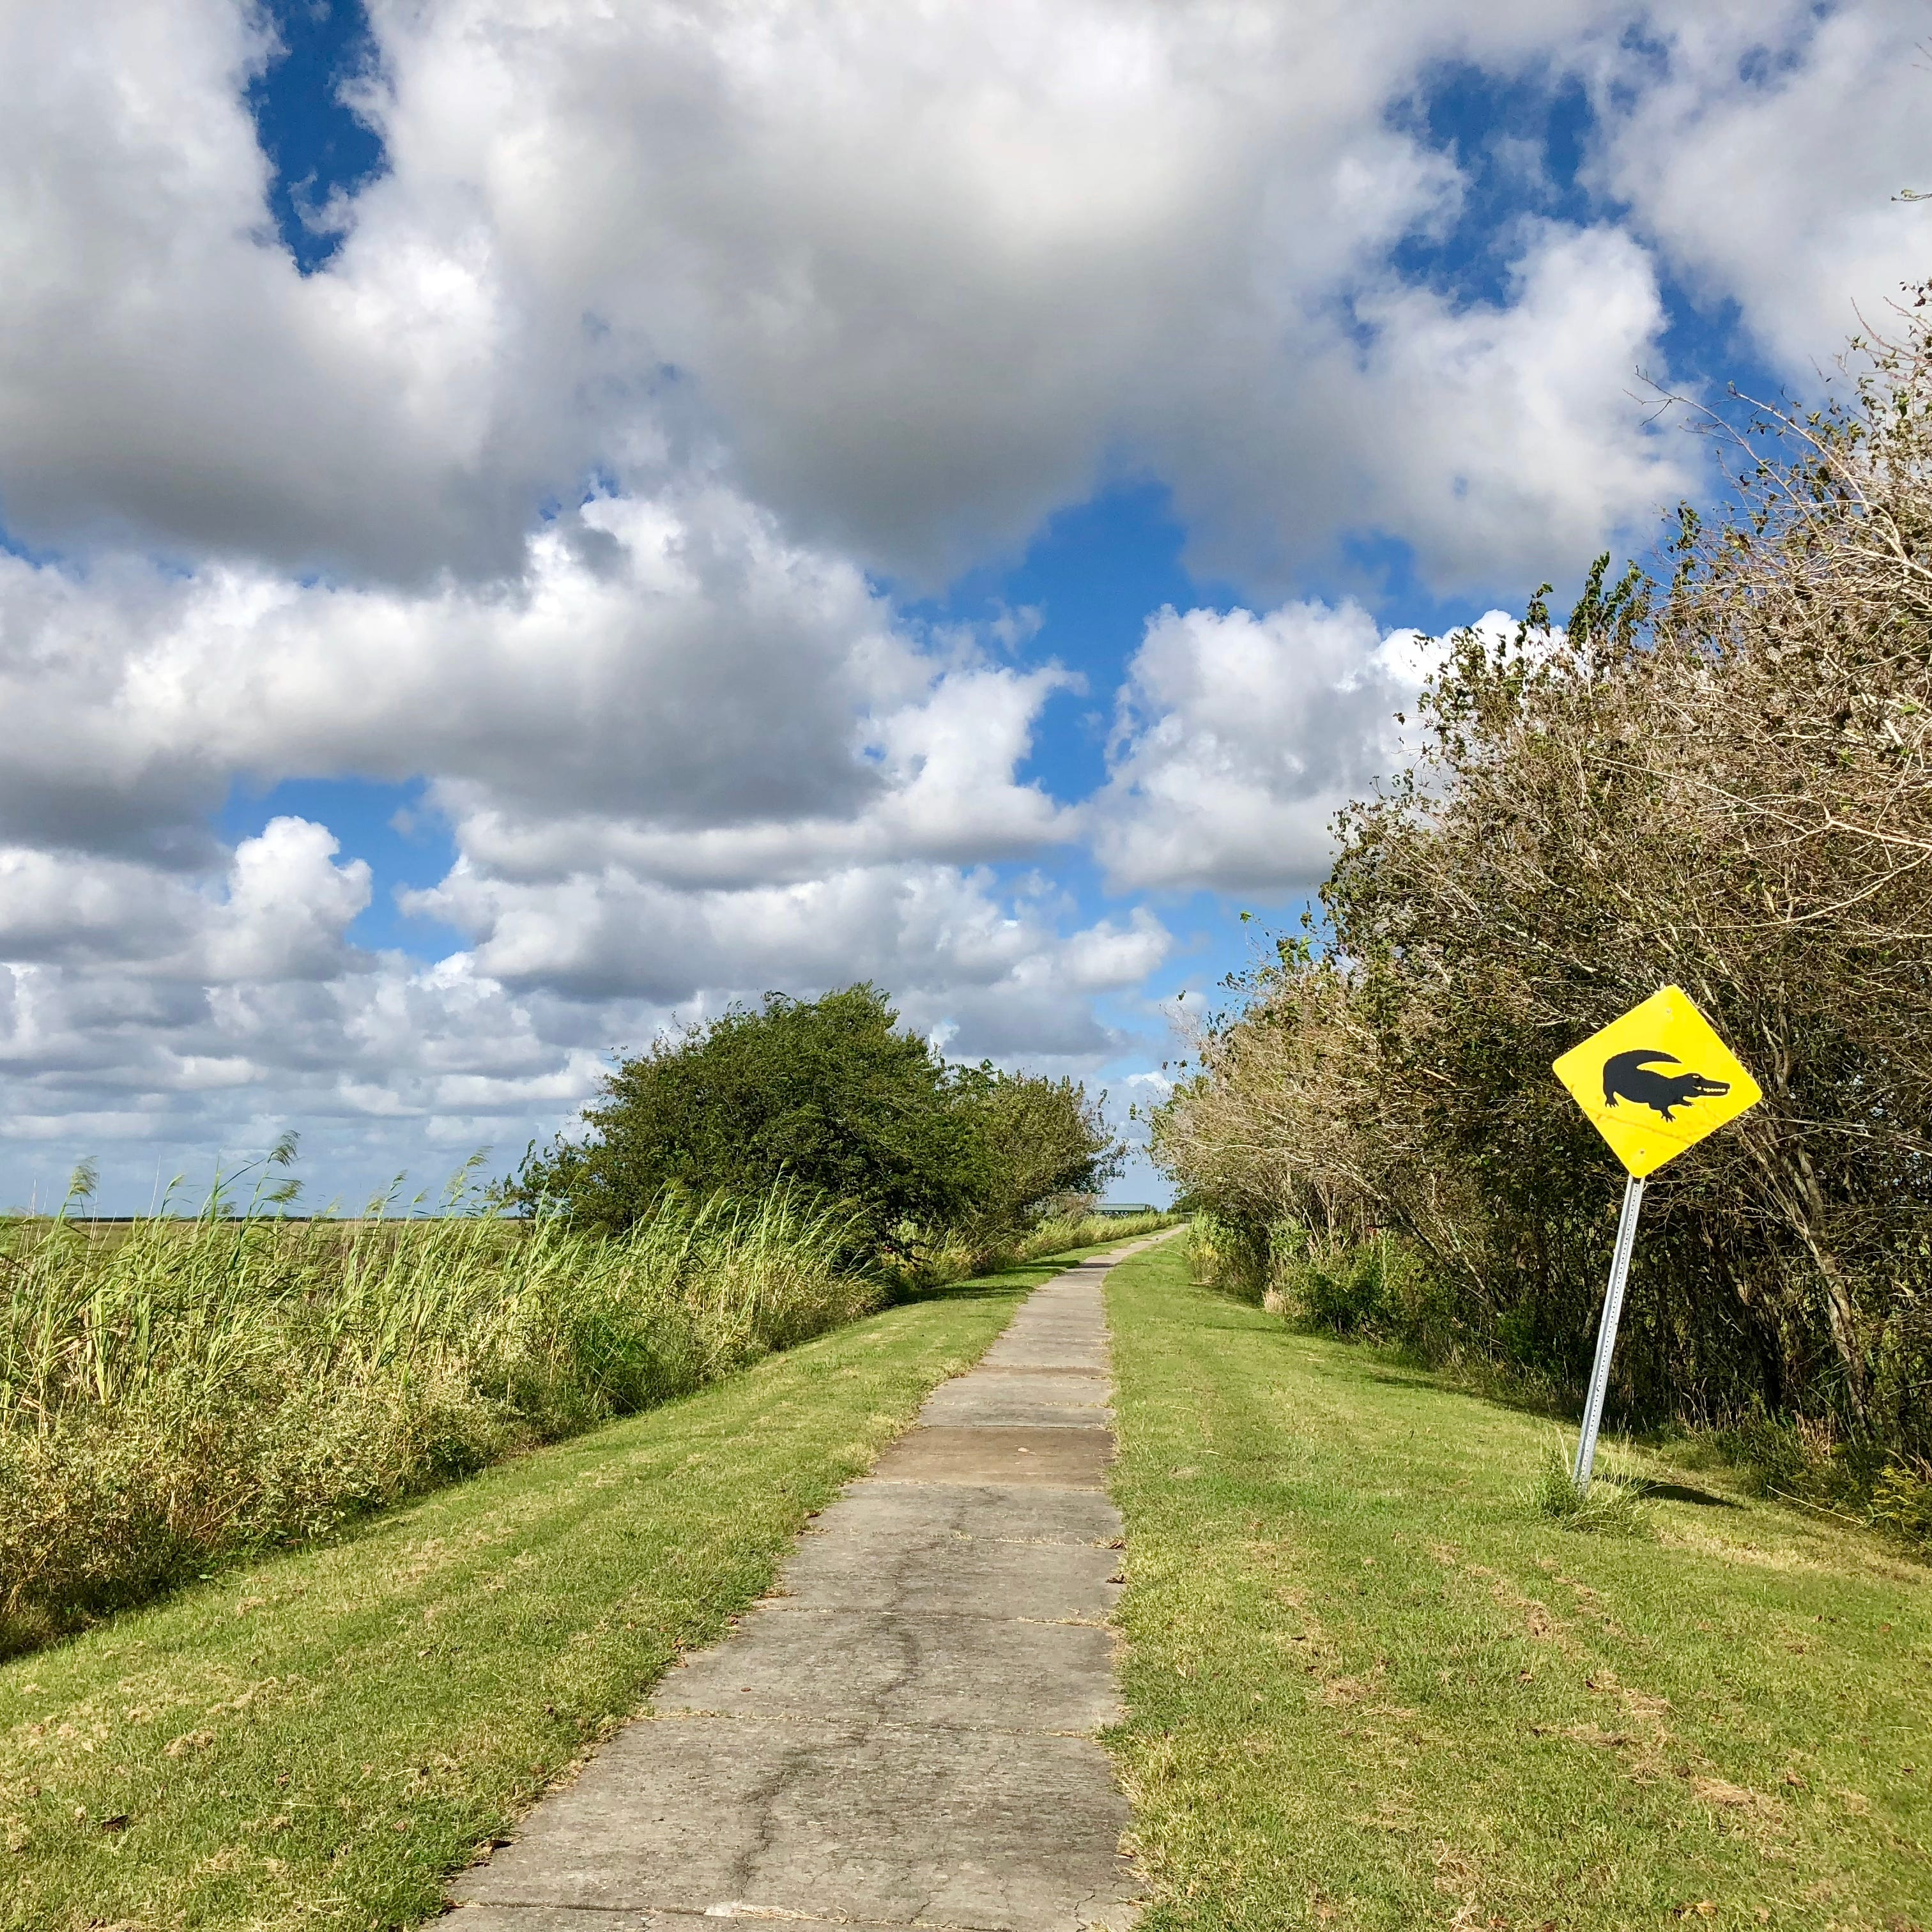 Visitors can experience the Wetlands Walkway on the Creole Nature Trail American Road through Cameron Parish.